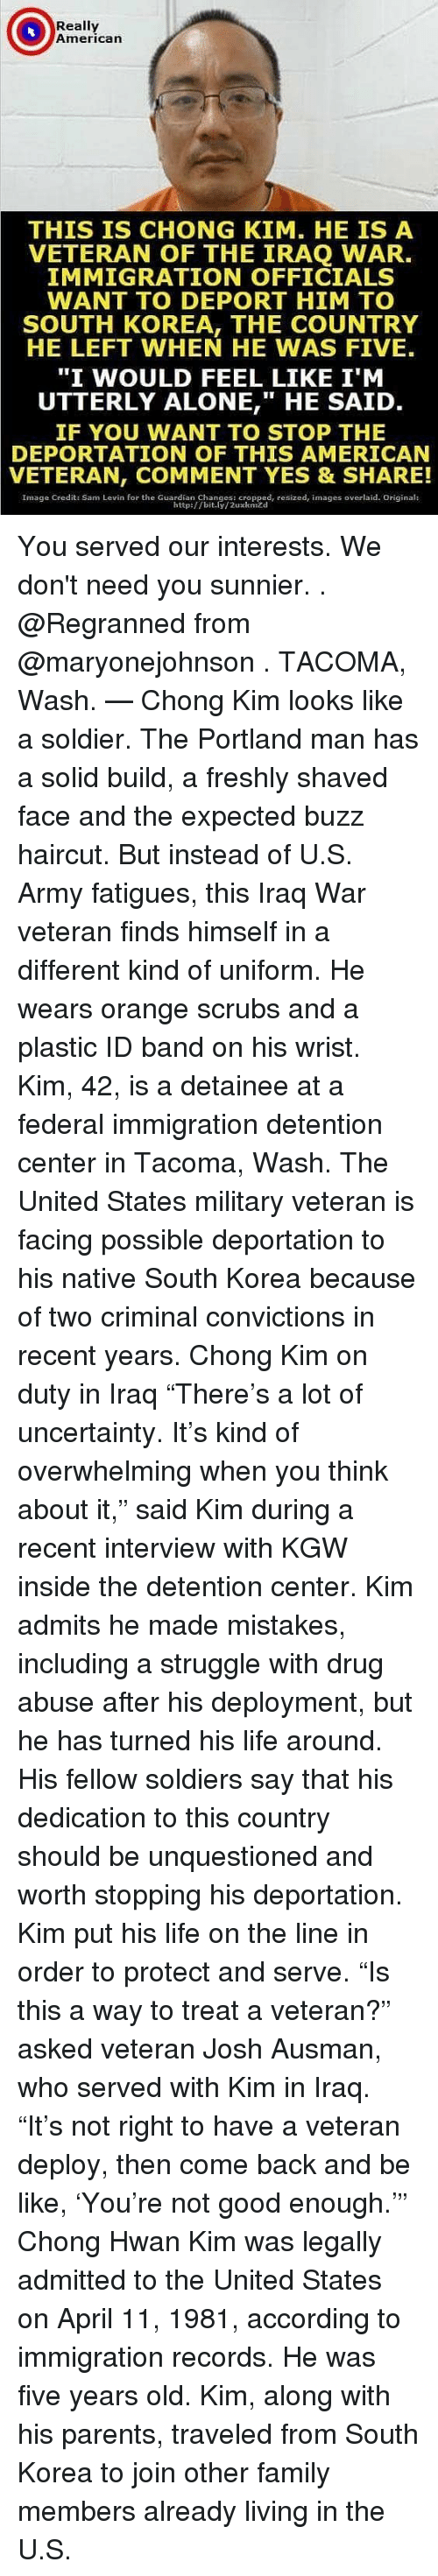 """Being Alone, Be Like, and Family: Really  American  THIS IS CHONG KIM. HE IS A  VETERAN OF THE IRAQ WAR  IMMIGRATION OFFICIALS  WANT TO DEPORT HIM TO  SOUTH KOREA, THE COUNTRY  HE LEFT WHEN HE WAS FIVE.  """"I WOULD FEEL LIKE I'M  UTTERLY ALONE,"""" HE SAID  IF YOU WANT TO STOP THE  DEPORTATION OF THIS AMERICAN  VETERAN, COMMENT YES & SHARE!  Image Credit: Sam Levin for the Guardian Changes: cropped, resized, images overlaid. Original:  http://bit.ly/2uxkmzd You served our interests. We don't need you sunnier. . @Regranned from @maryonejohnson . TACOMA, Wash. — Chong Kim looks like a soldier. The Portland man has a solid build, a freshly shaved face and the expected buzz haircut. But instead of U.S. Army fatigues, this Iraq War veteran finds himself in a different kind of uniform. He wears orange scrubs and a plastic ID band on his wrist. Kim, 42, is a detainee at a federal immigration detention center in Tacoma, Wash. The United States military veteran is facing possible deportation to his native South Korea because of two criminal convictions in recent years. Chong Kim on duty in Iraq """"There's a lot of uncertainty. It's kind of overwhelming when you think about it,"""" said Kim during a recent interview with KGW inside the detention center. Kim admits he made mistakes, including a struggle with drug abuse after his deployment, but he has turned his life around. His fellow soldiers say that his dedication to this country should be unquestioned and worth stopping his deportation. Kim put his life on the line in order to protect and serve. """"Is this a way to treat a veteran?"""" asked veteran Josh Ausman, who served with Kim in Iraq. """"It's not right to have a veteran deploy, then come back and be like, 'You're not good enough.'"""" Chong Hwan Kim was legally admitted to the United States on April 11, 1981, according to immigration records. He was five years old. Kim, along with his parents, traveled from South Korea to join other family members already living in the U.S."""